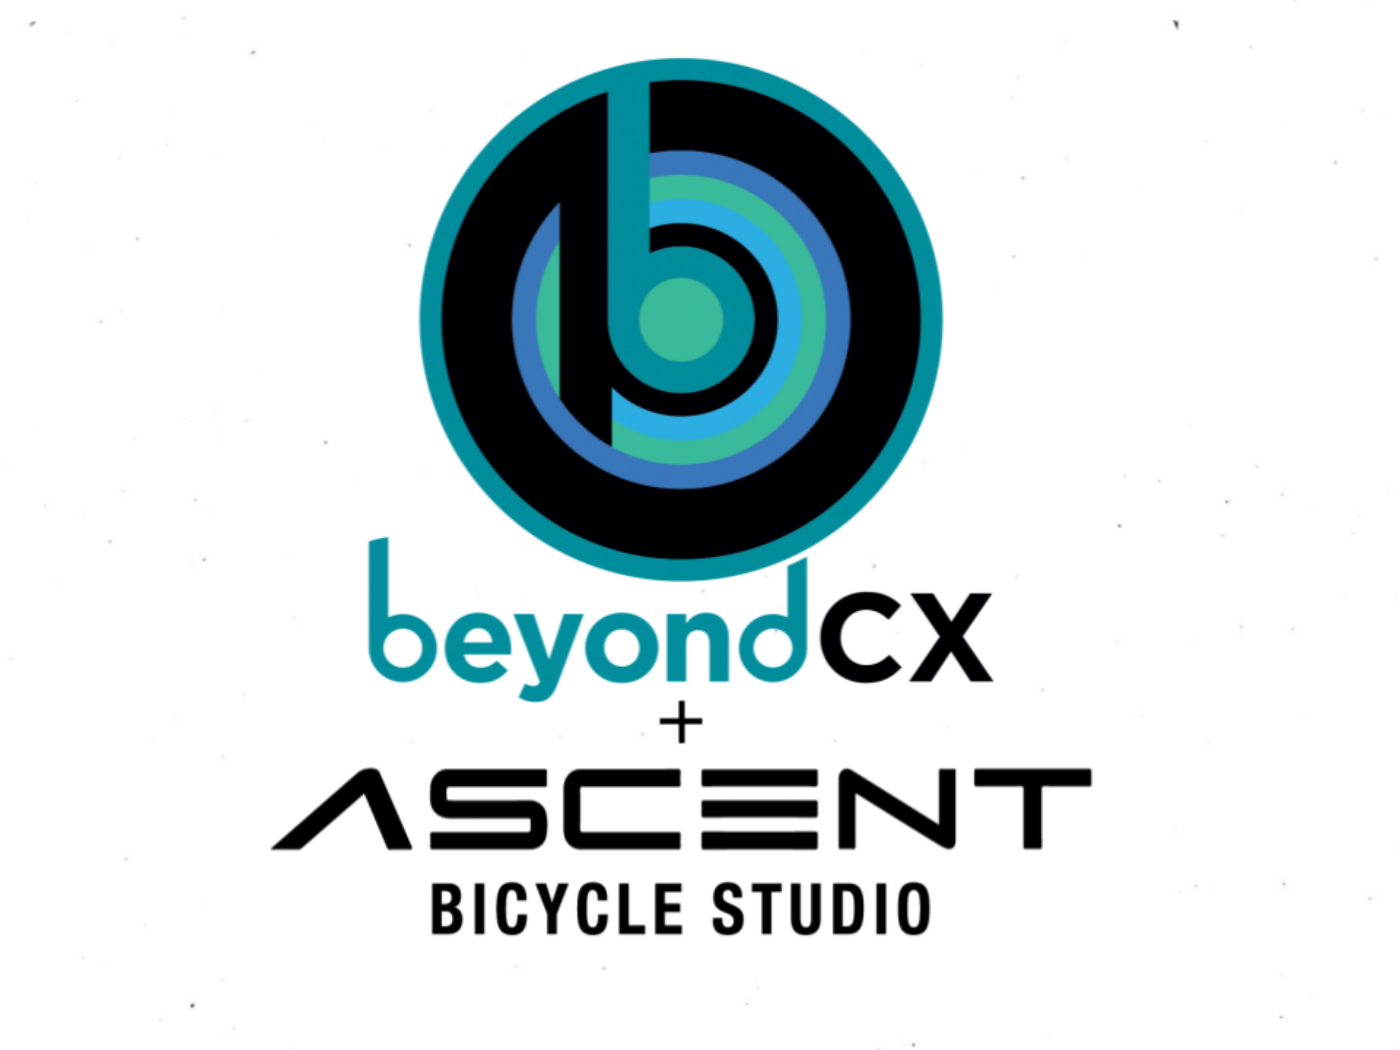 beyondCXcycling